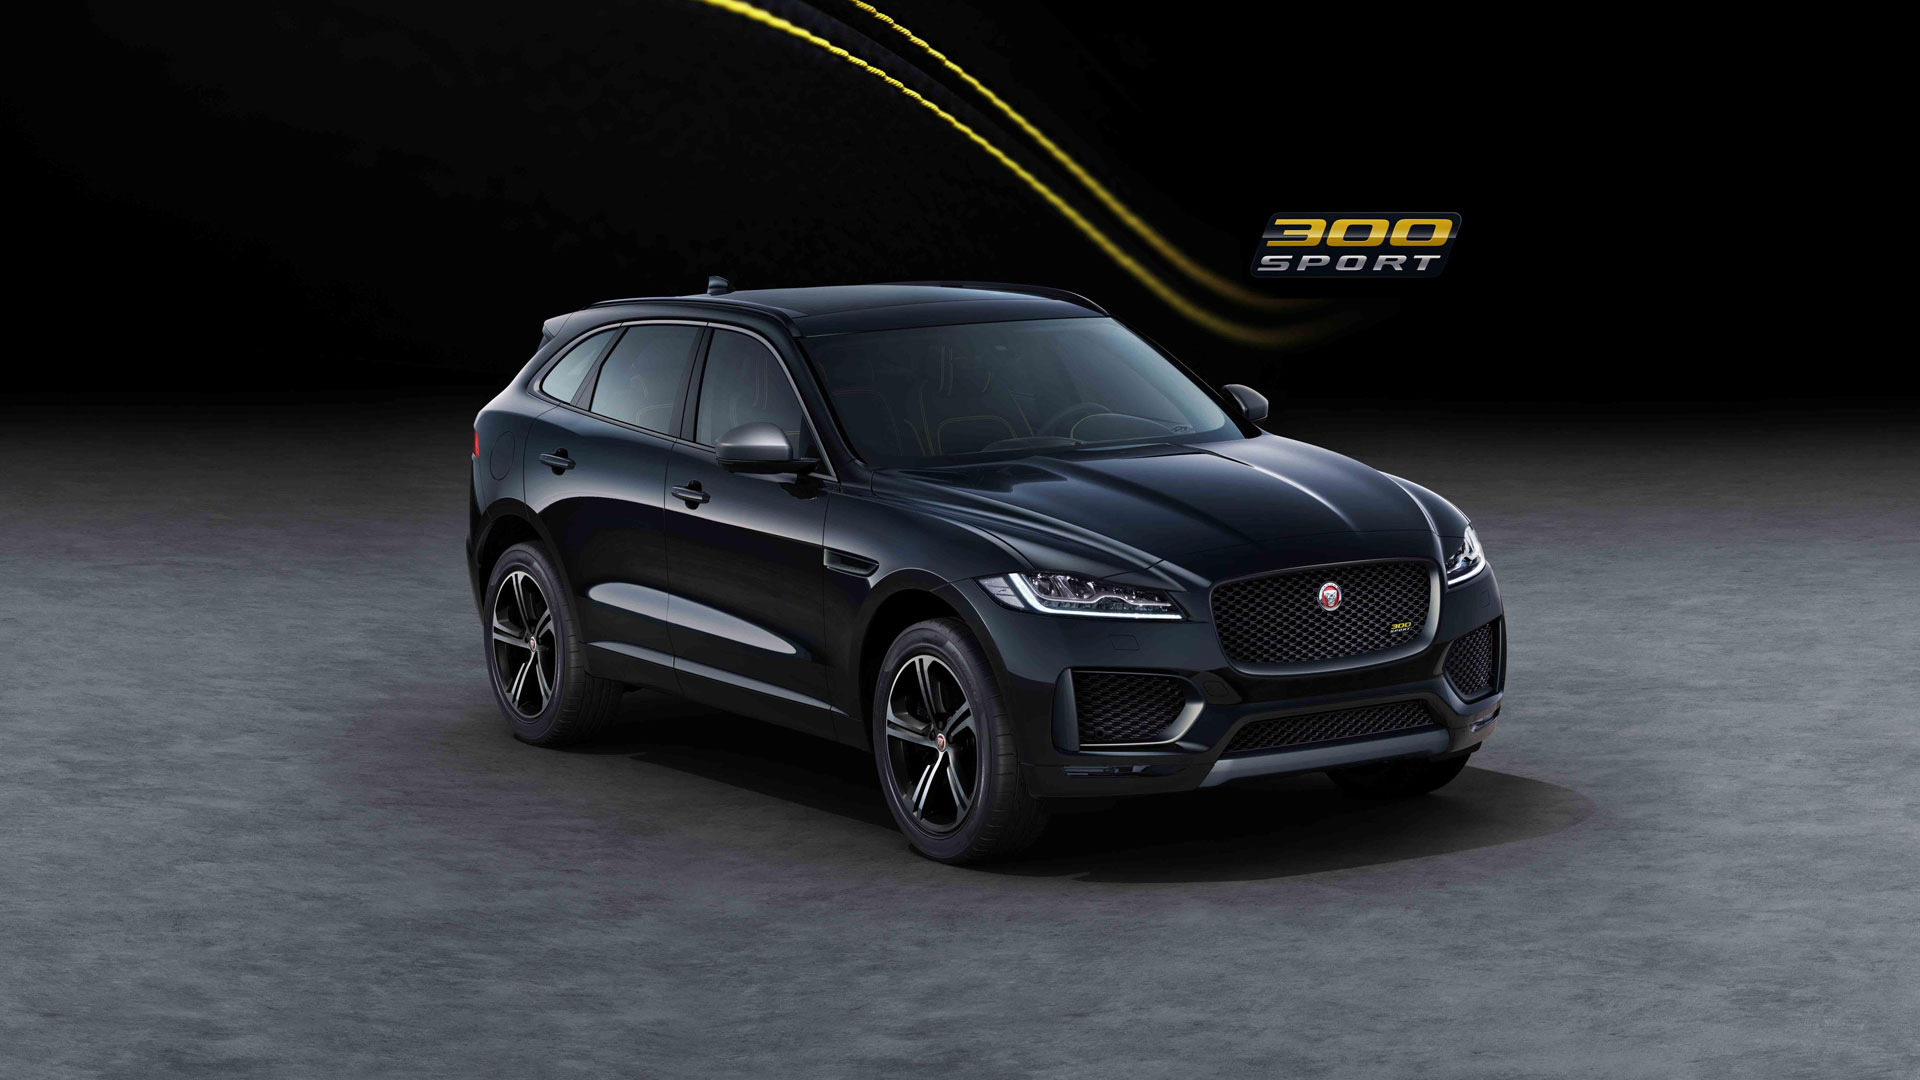 jaguar f pace 300 sport and chequered flag editions. Black Bedroom Furniture Sets. Home Design Ideas